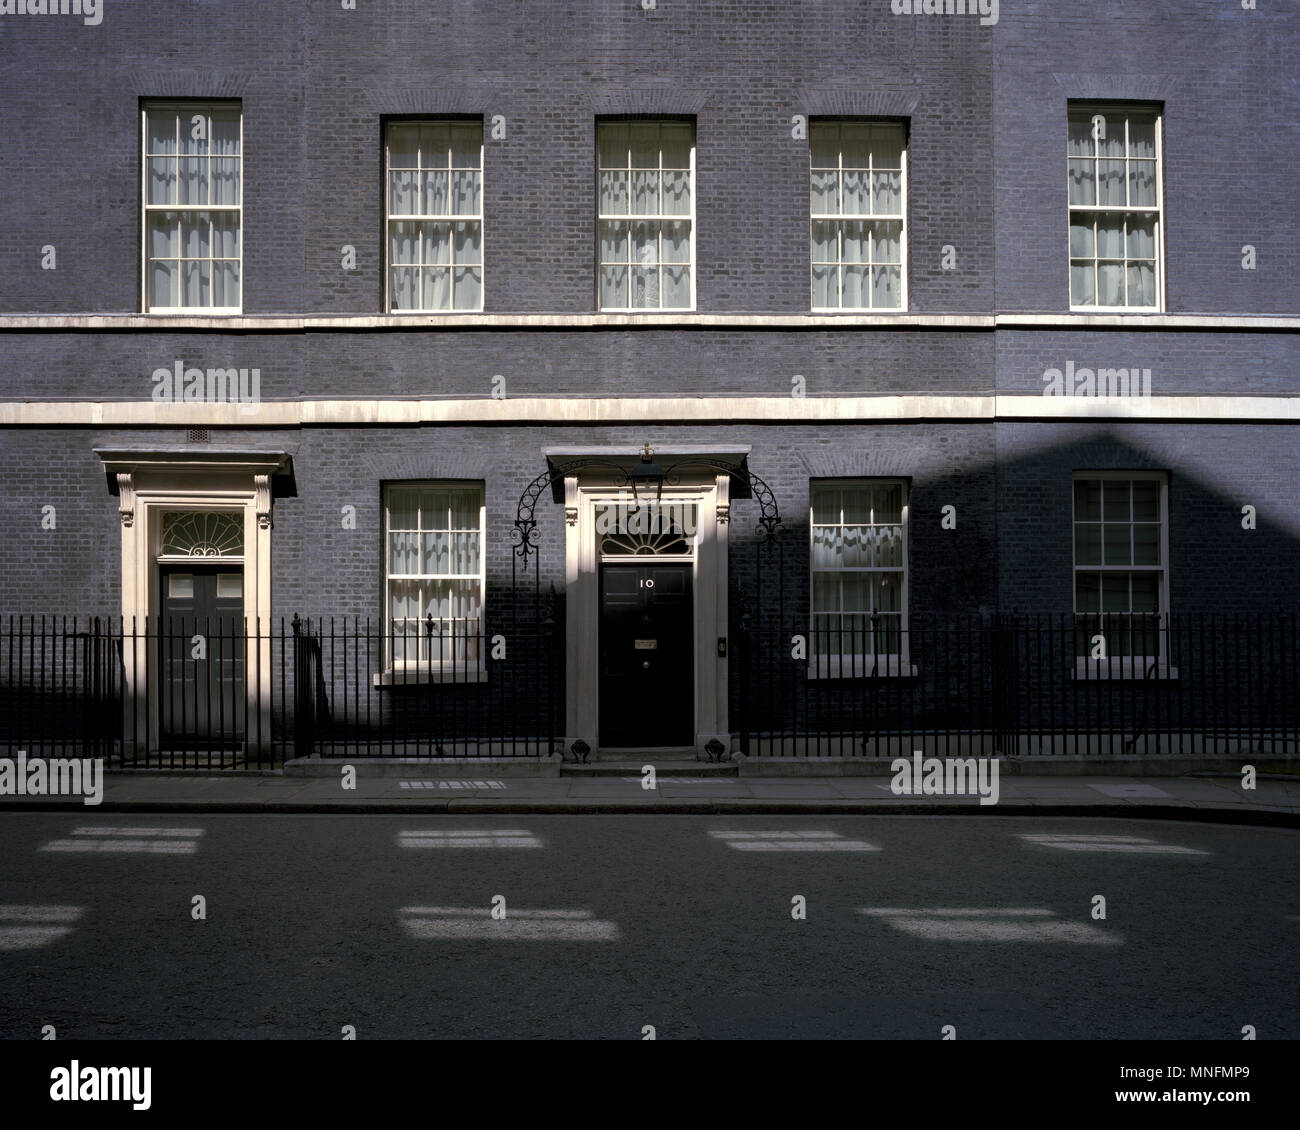 by John Angerson. The Door of 10 Downing Street, London, UK. - Stock Image